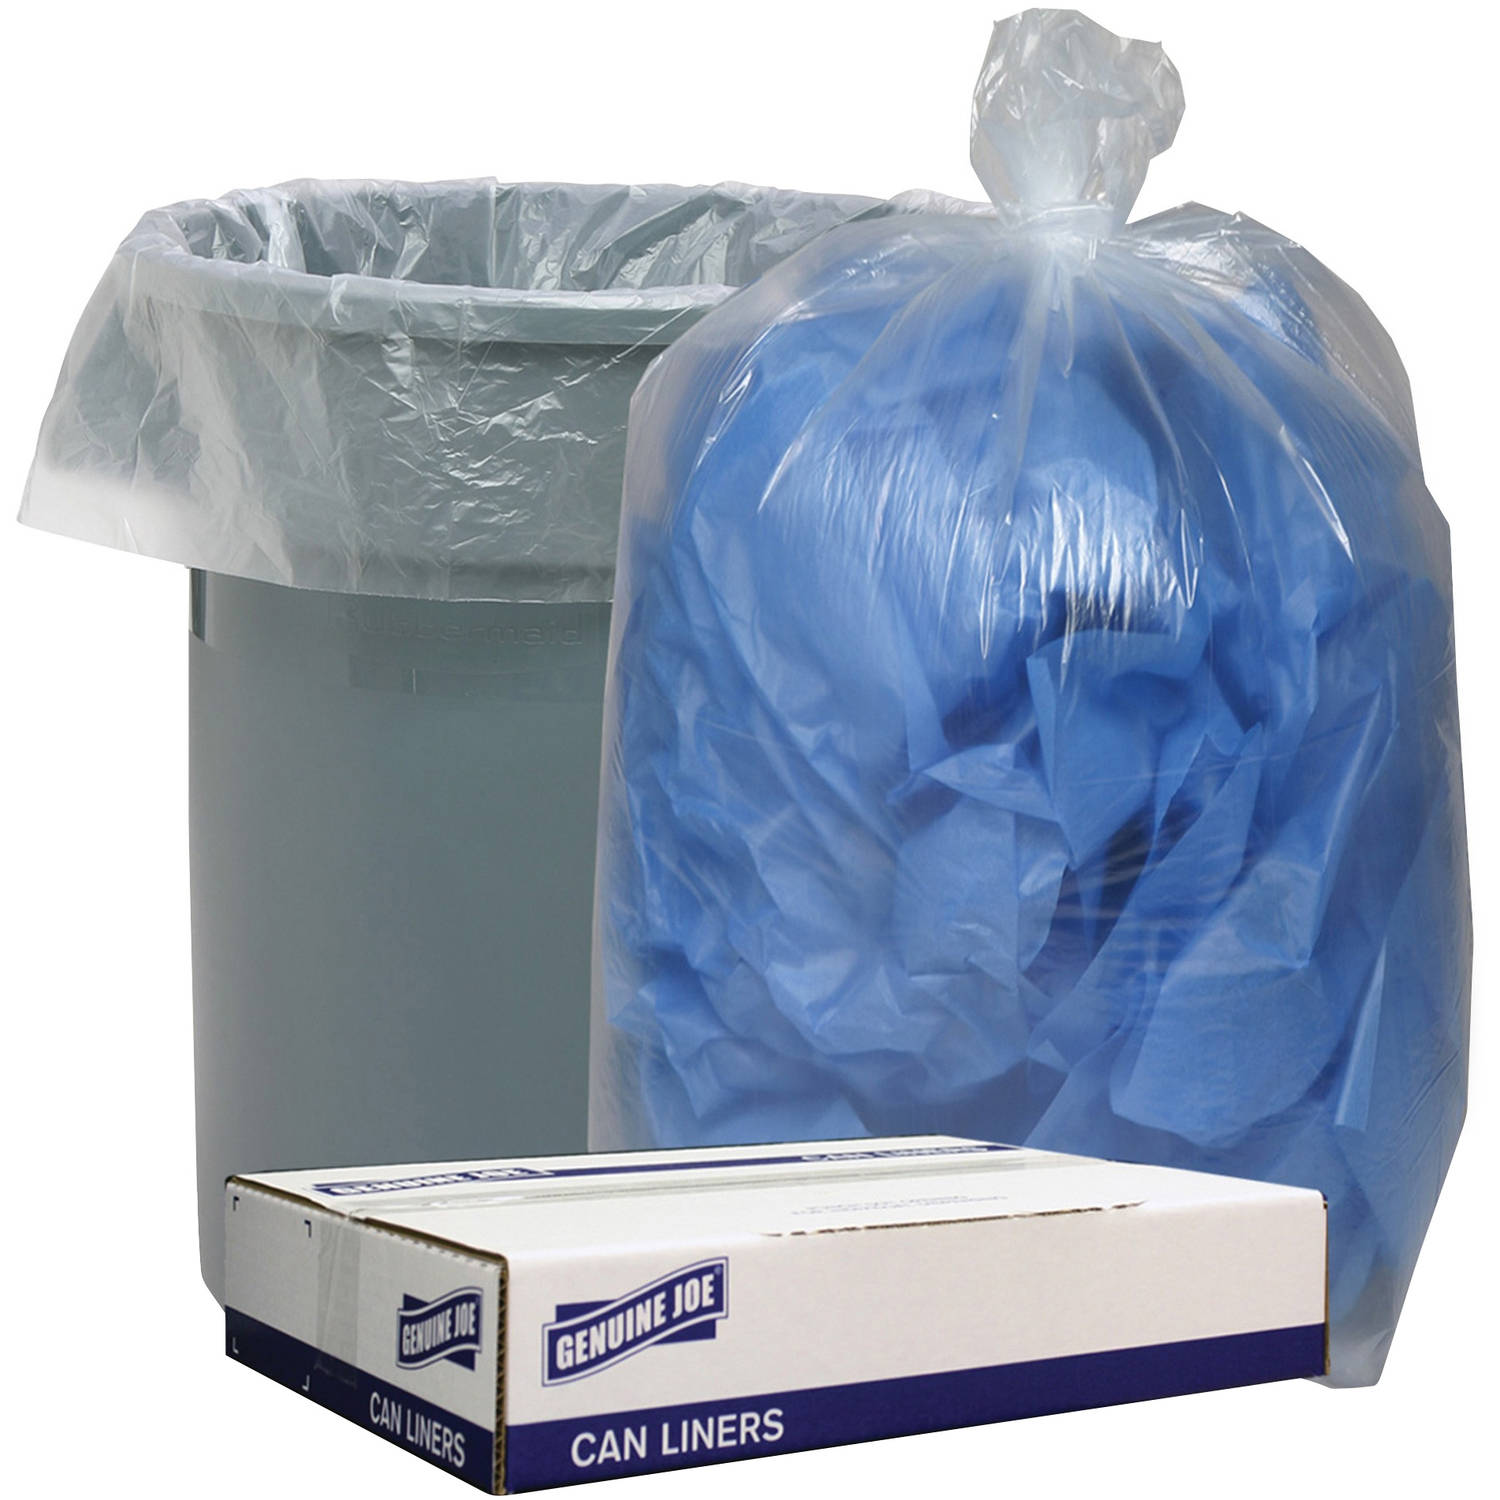 Genuine Joe Clear Low Density Can Liners, 100 count